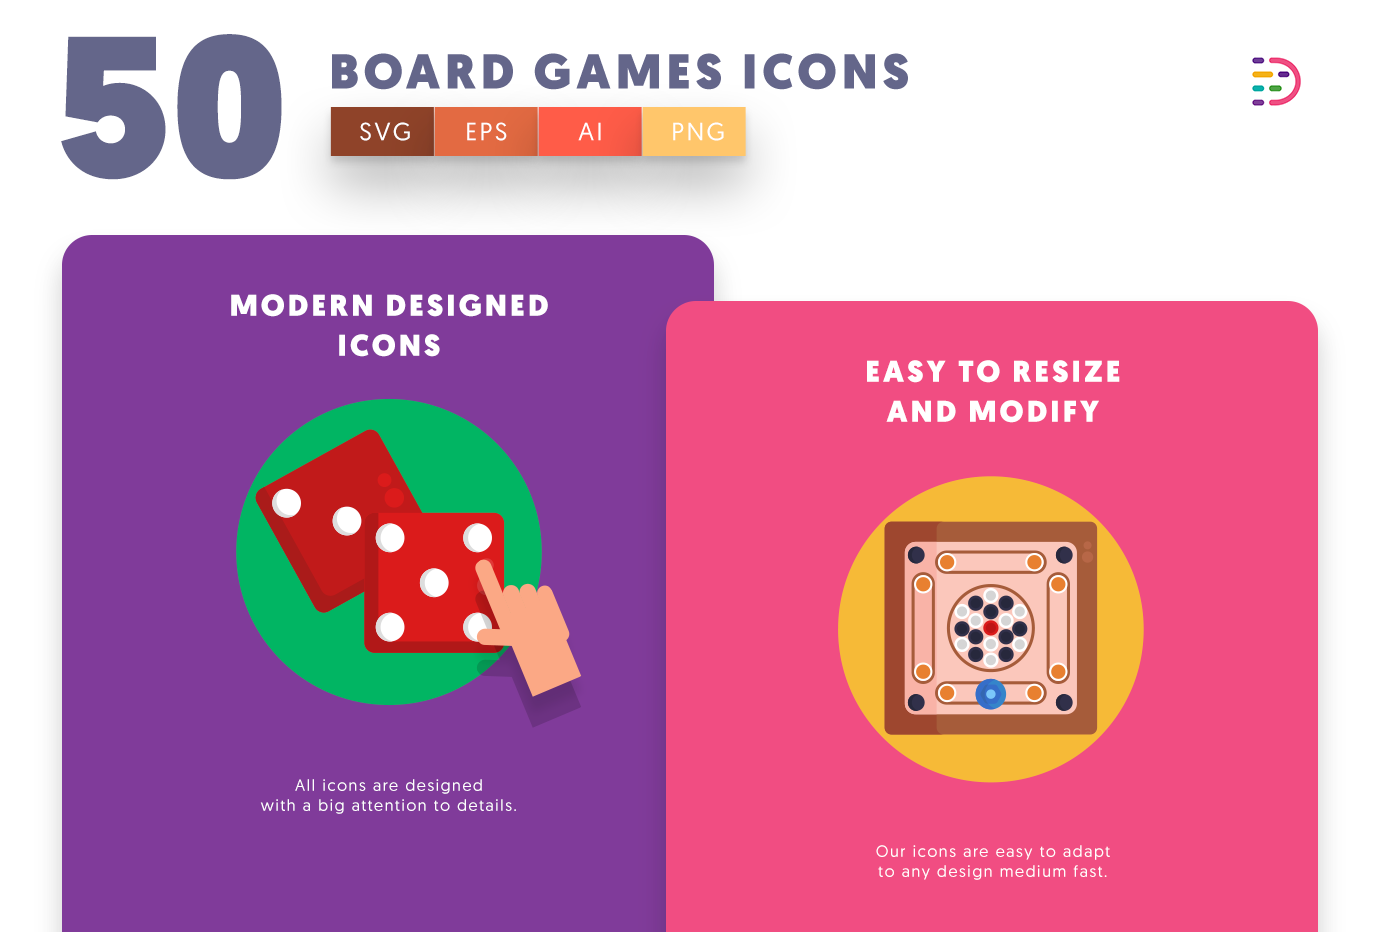 Board Games icons png/svg/eps